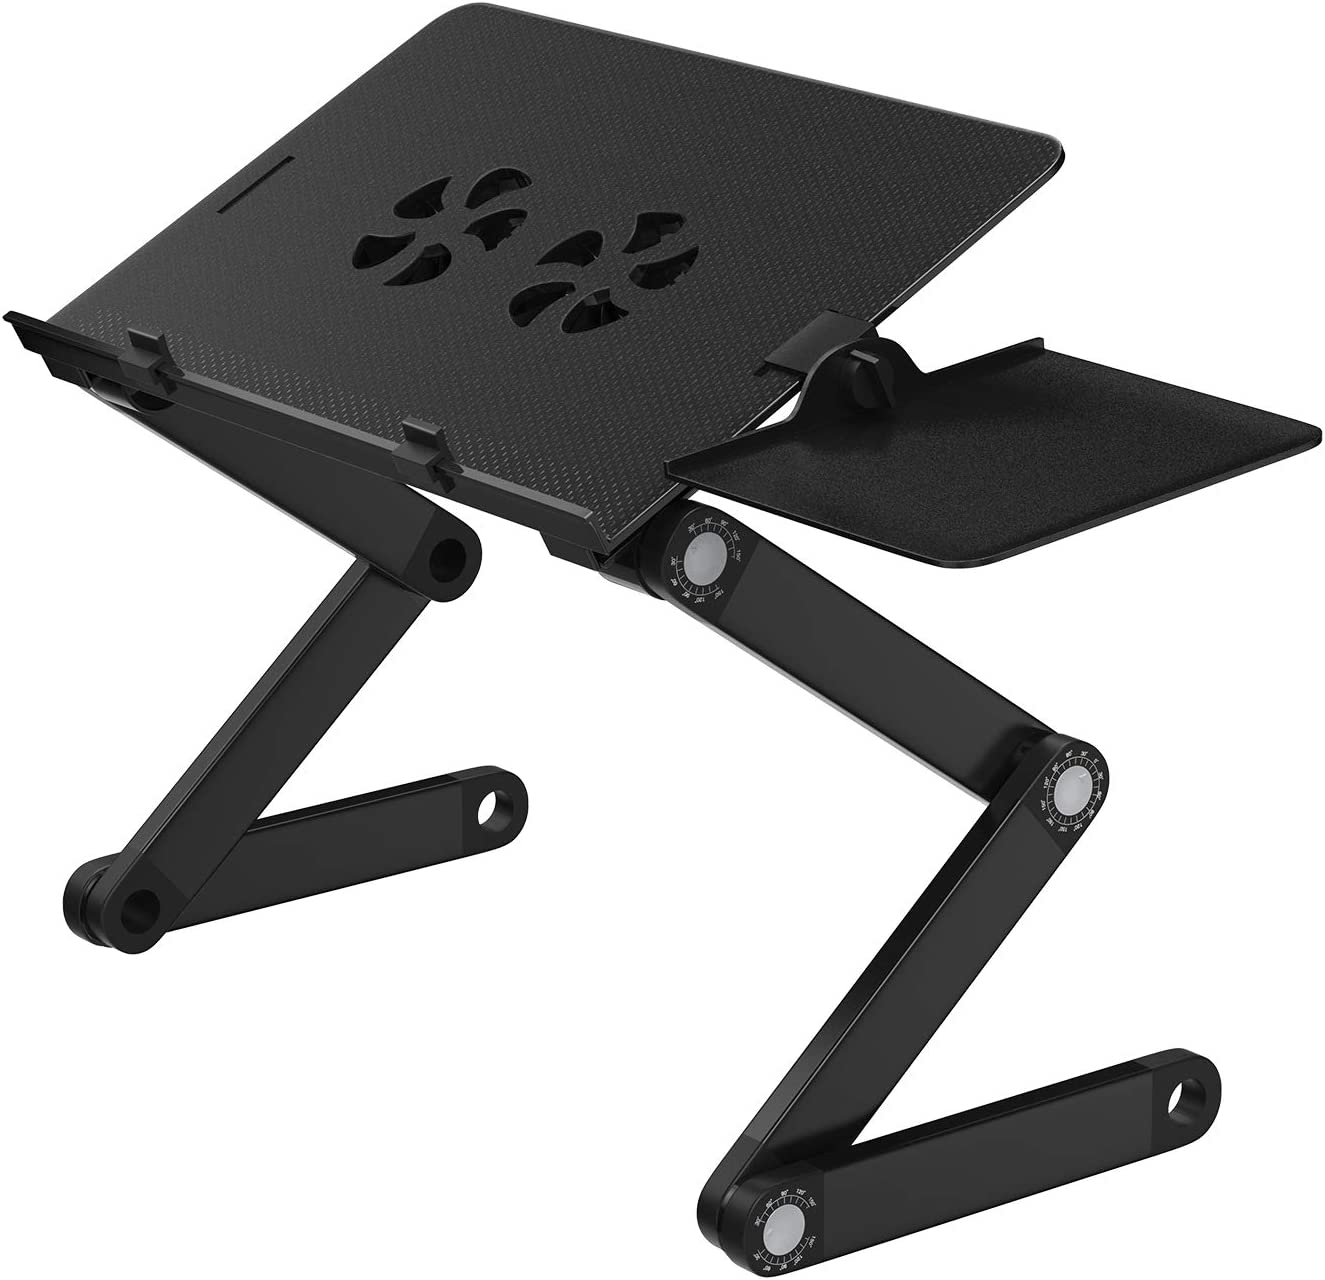 HUANUO Adjustable Laptop Stand, Portable Laptop Table Stand with 2 CPU Cooling Fans, Ergonomic Lap Desk TV Bed Tray Standing Desk